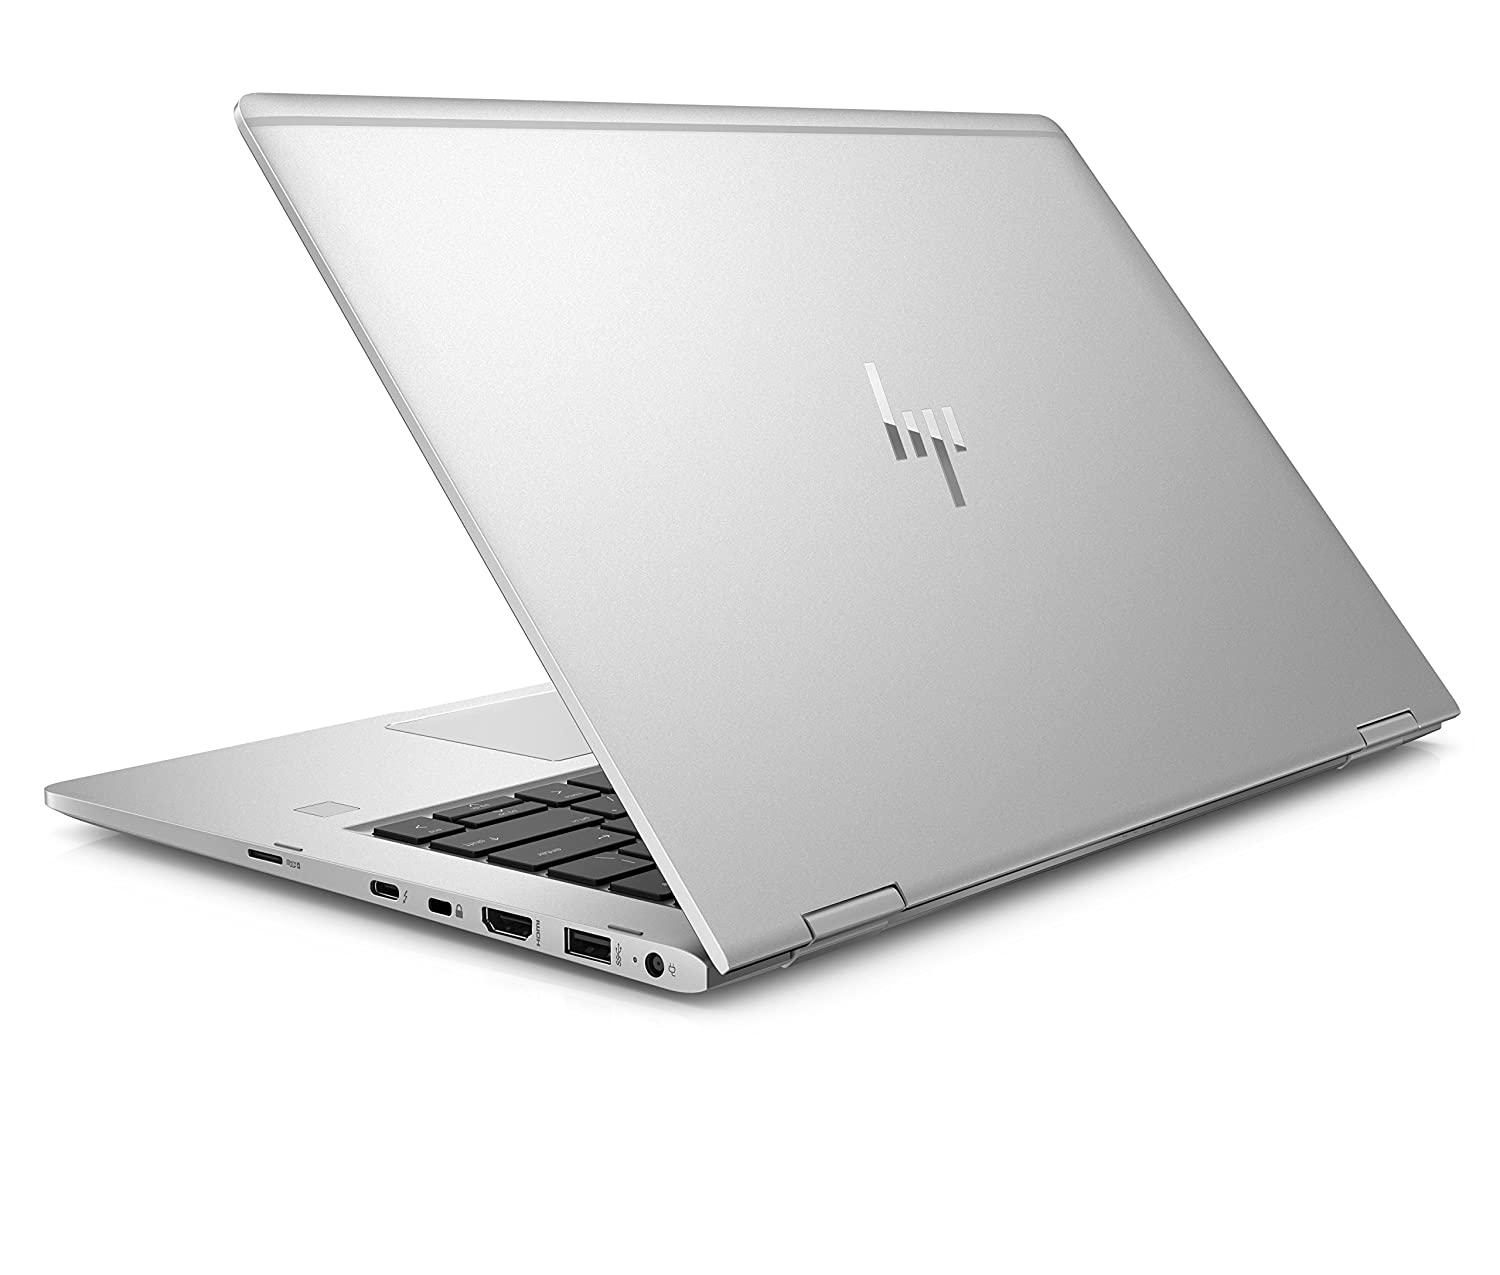 Notebook HP EliteBook X360 1030 G2, Pantalla 13.3, i5 - 7200u, 8 GB de SDRAM DDR4, SSD 256 GB, Intel HD 620, Plateado: Amazon.es: Informática